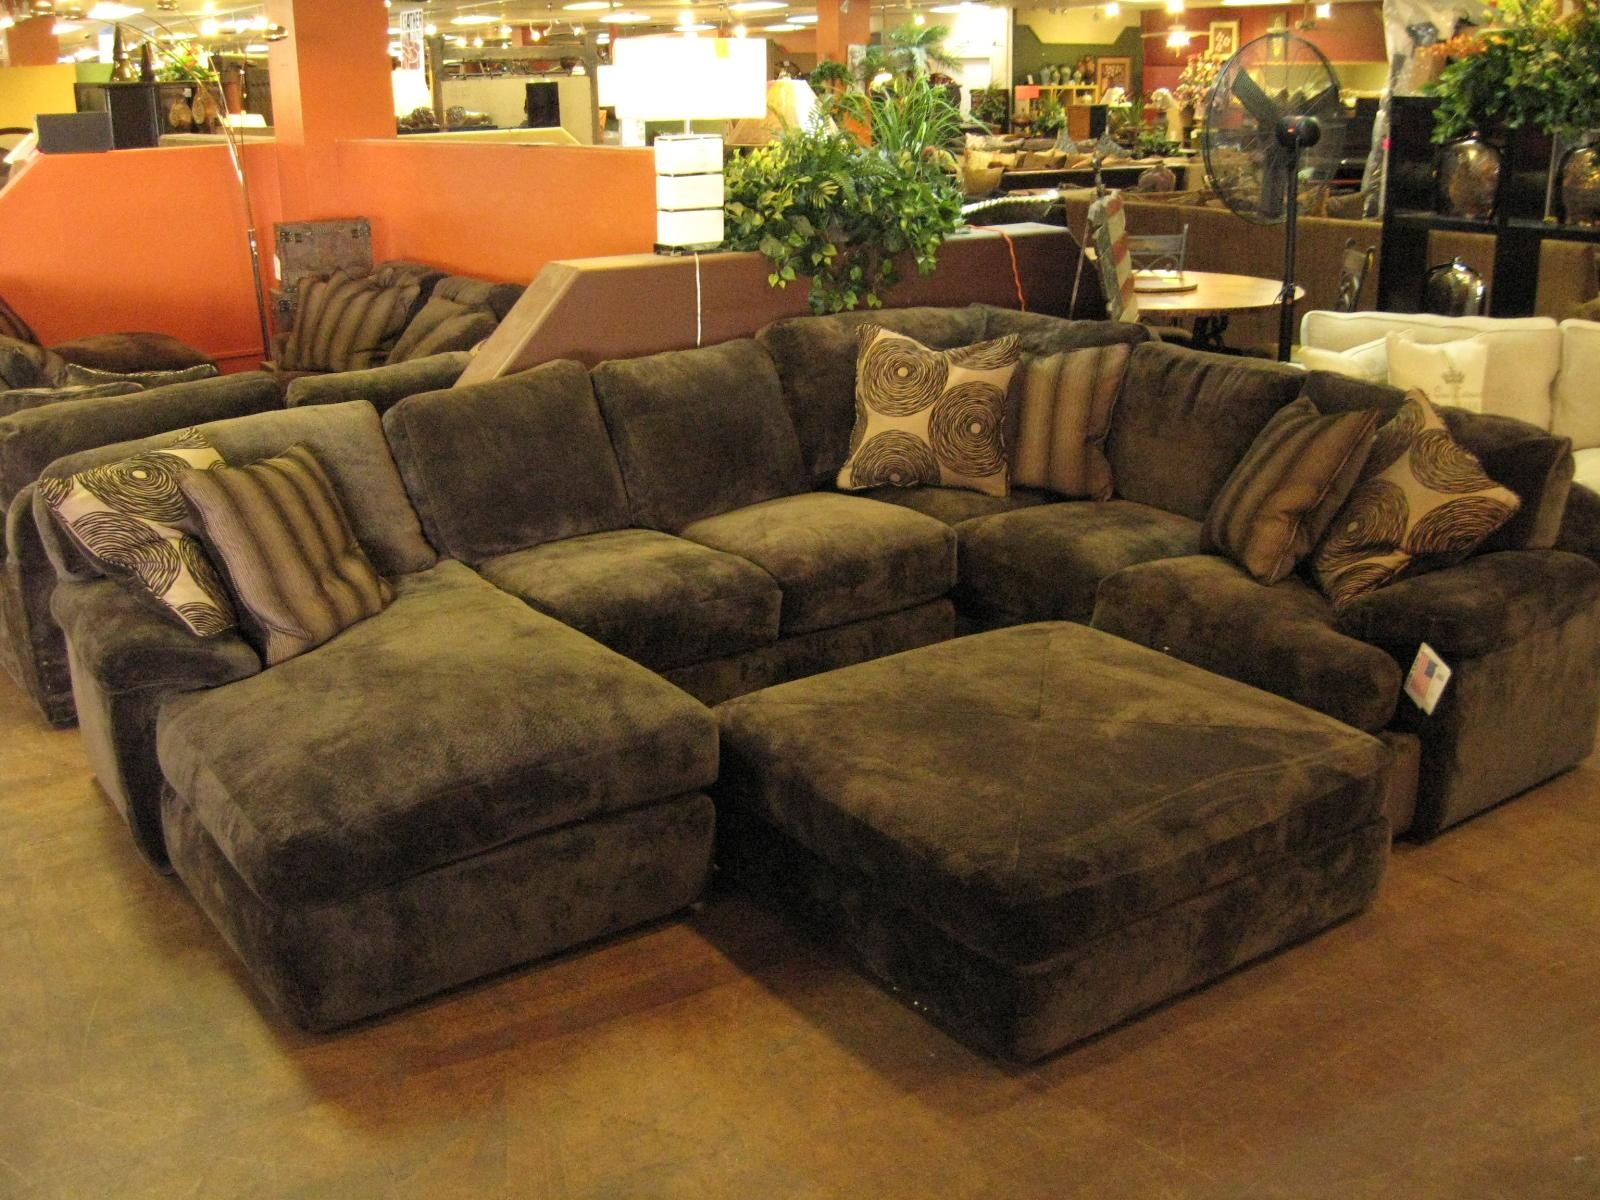 Sofas Center : Wonderful Cheap Rednal Sofa About Remodel Create With Down Filled Sectional Sofa (Image 14 of 15)